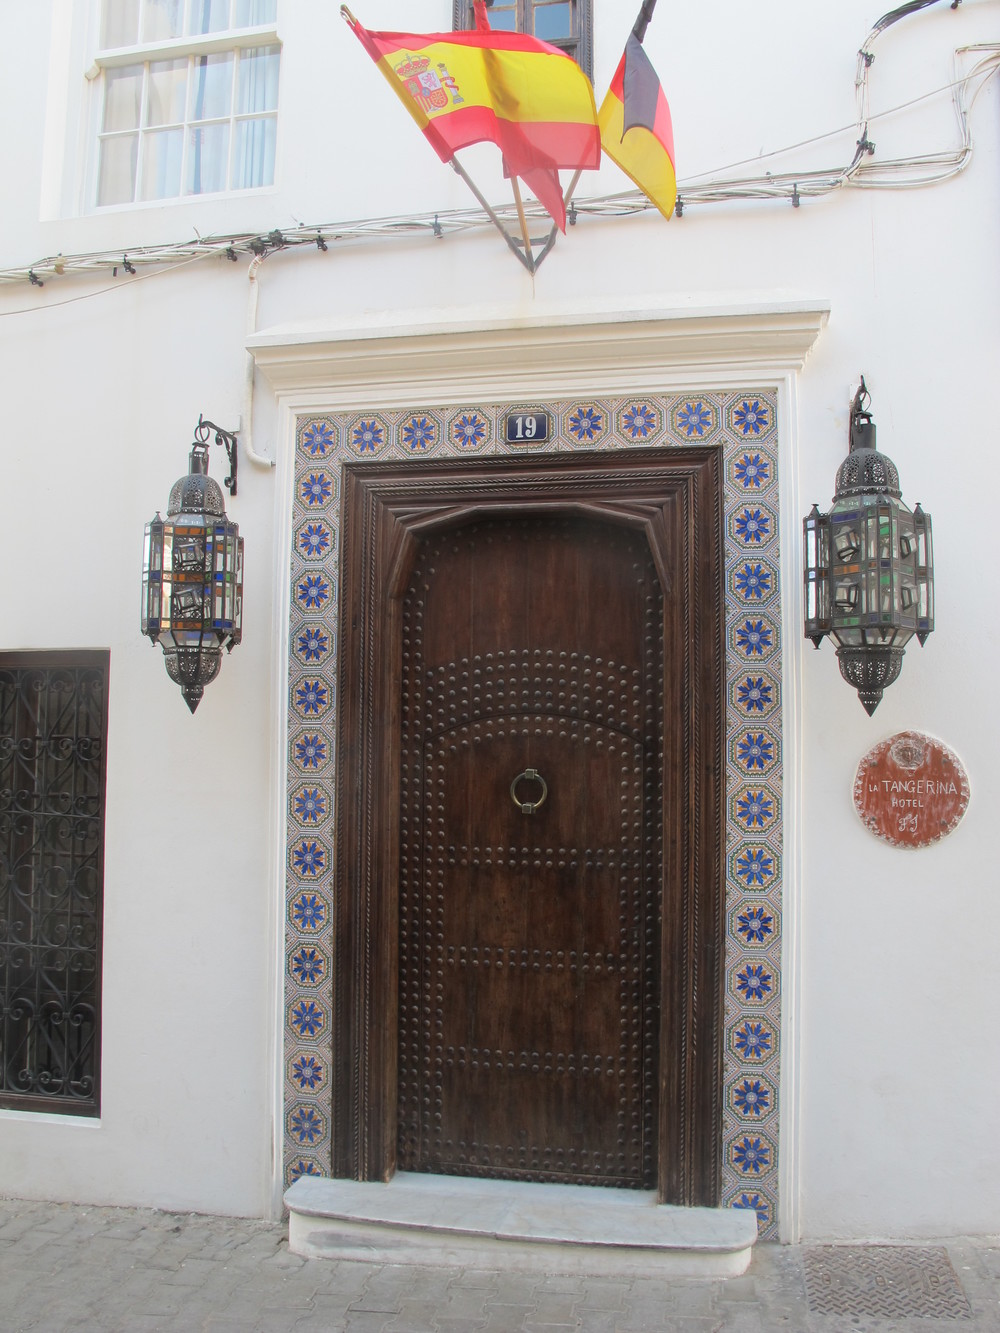 Hotel Tangerina in the Medina